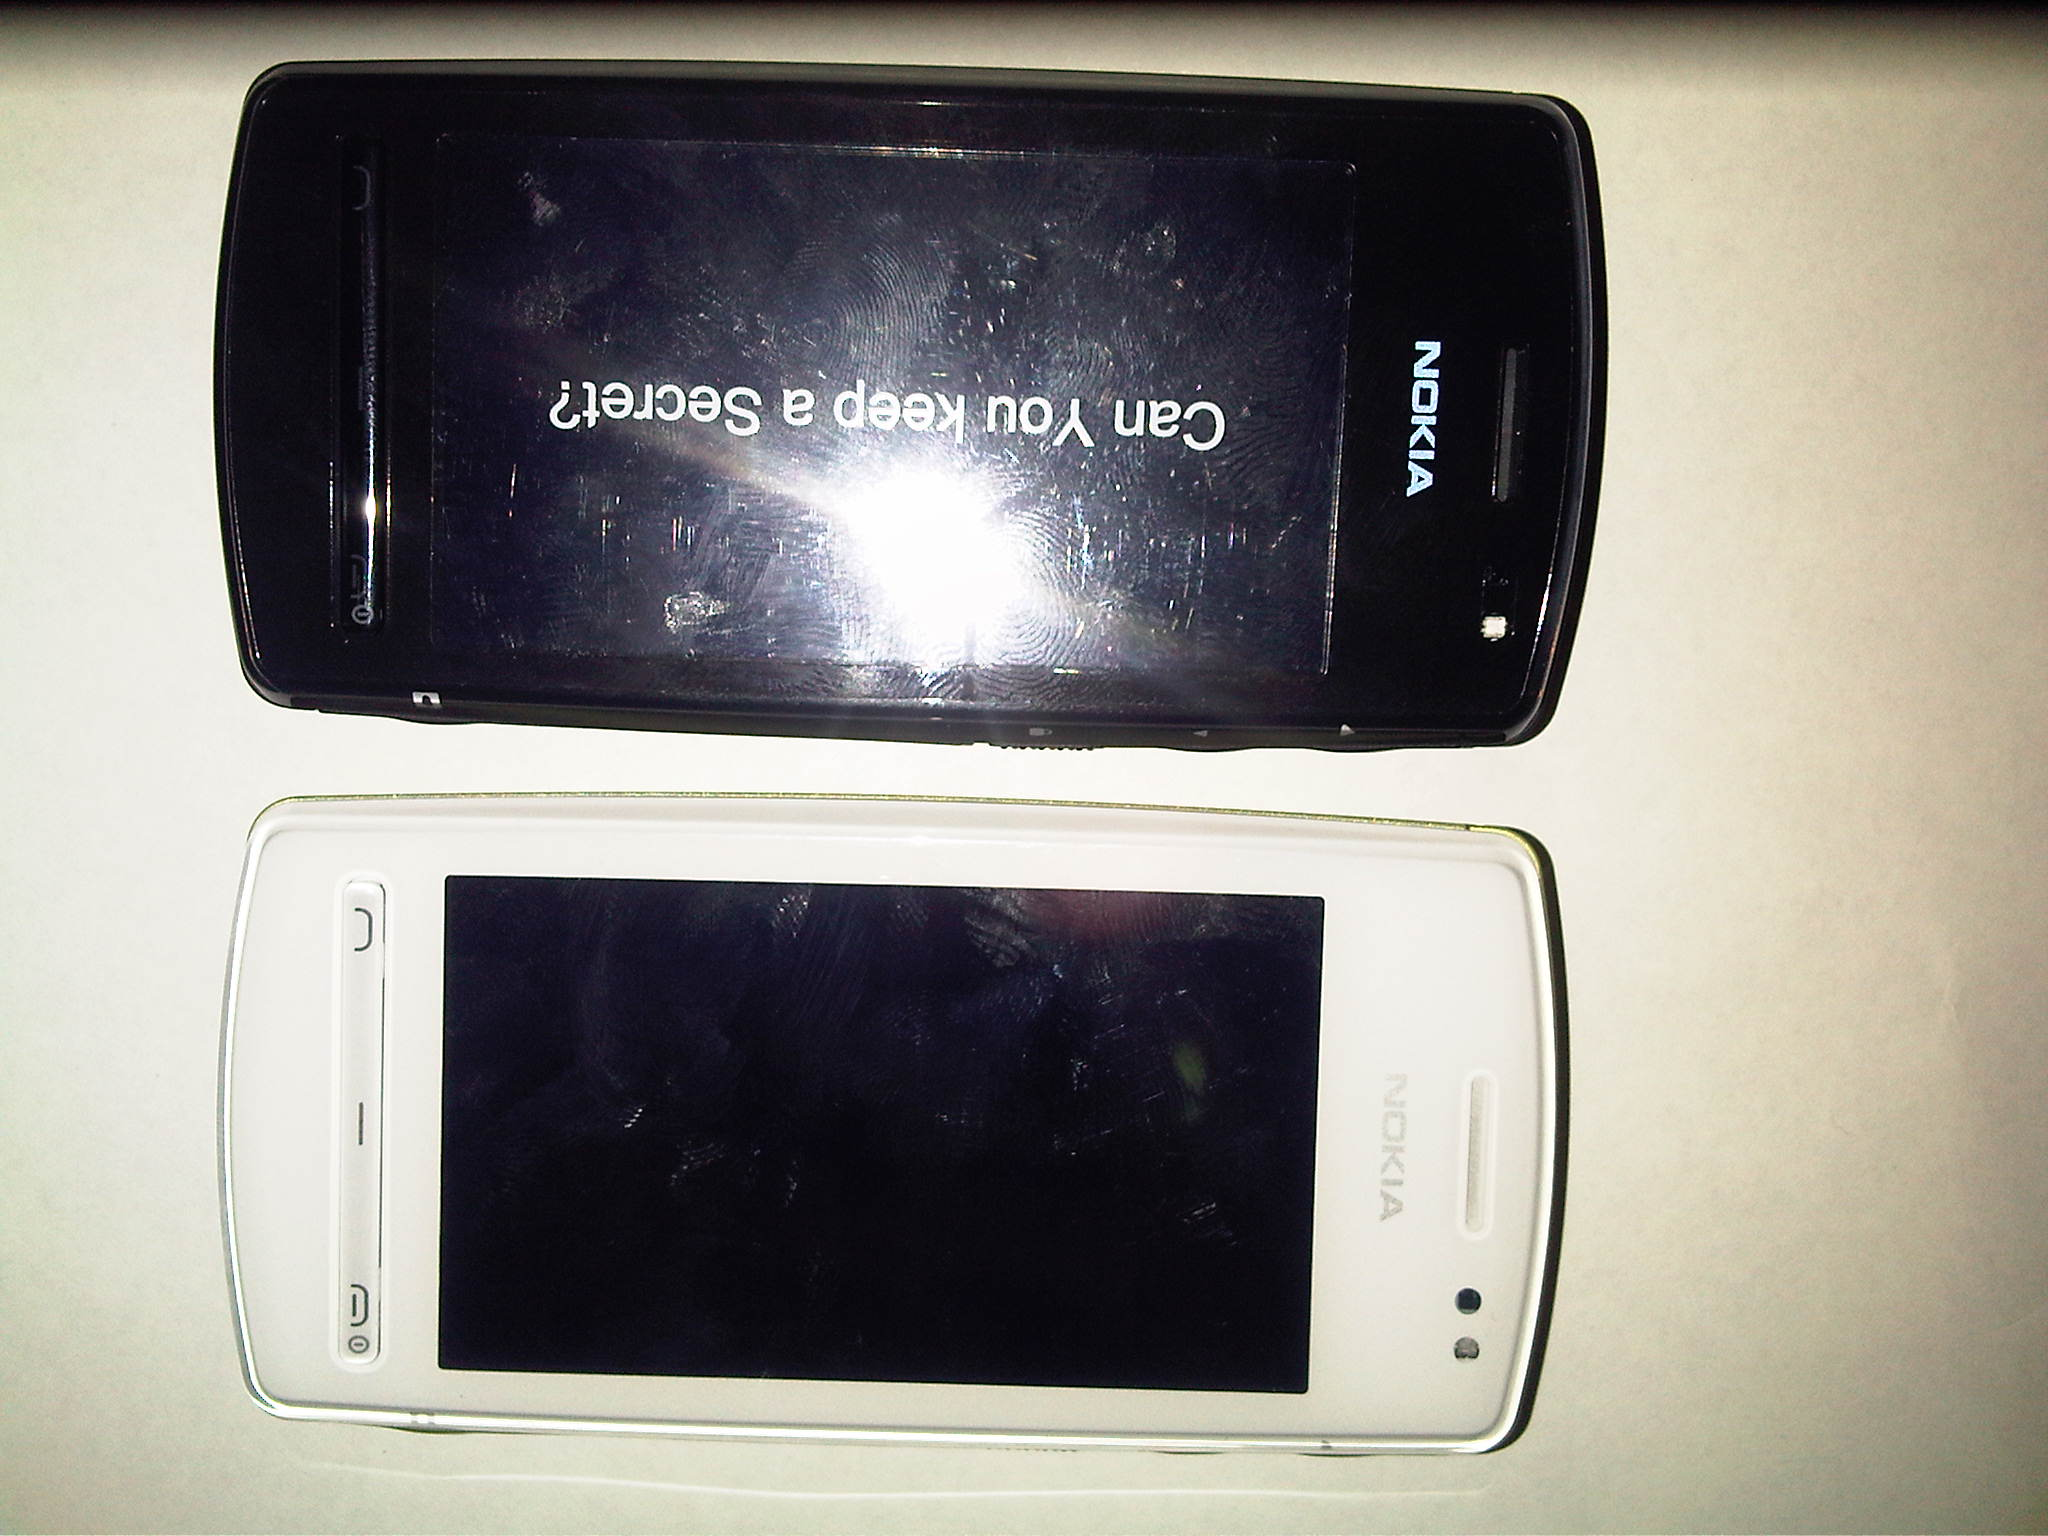 Nokia N5 Symbian Anna Smartphone Images spotted online